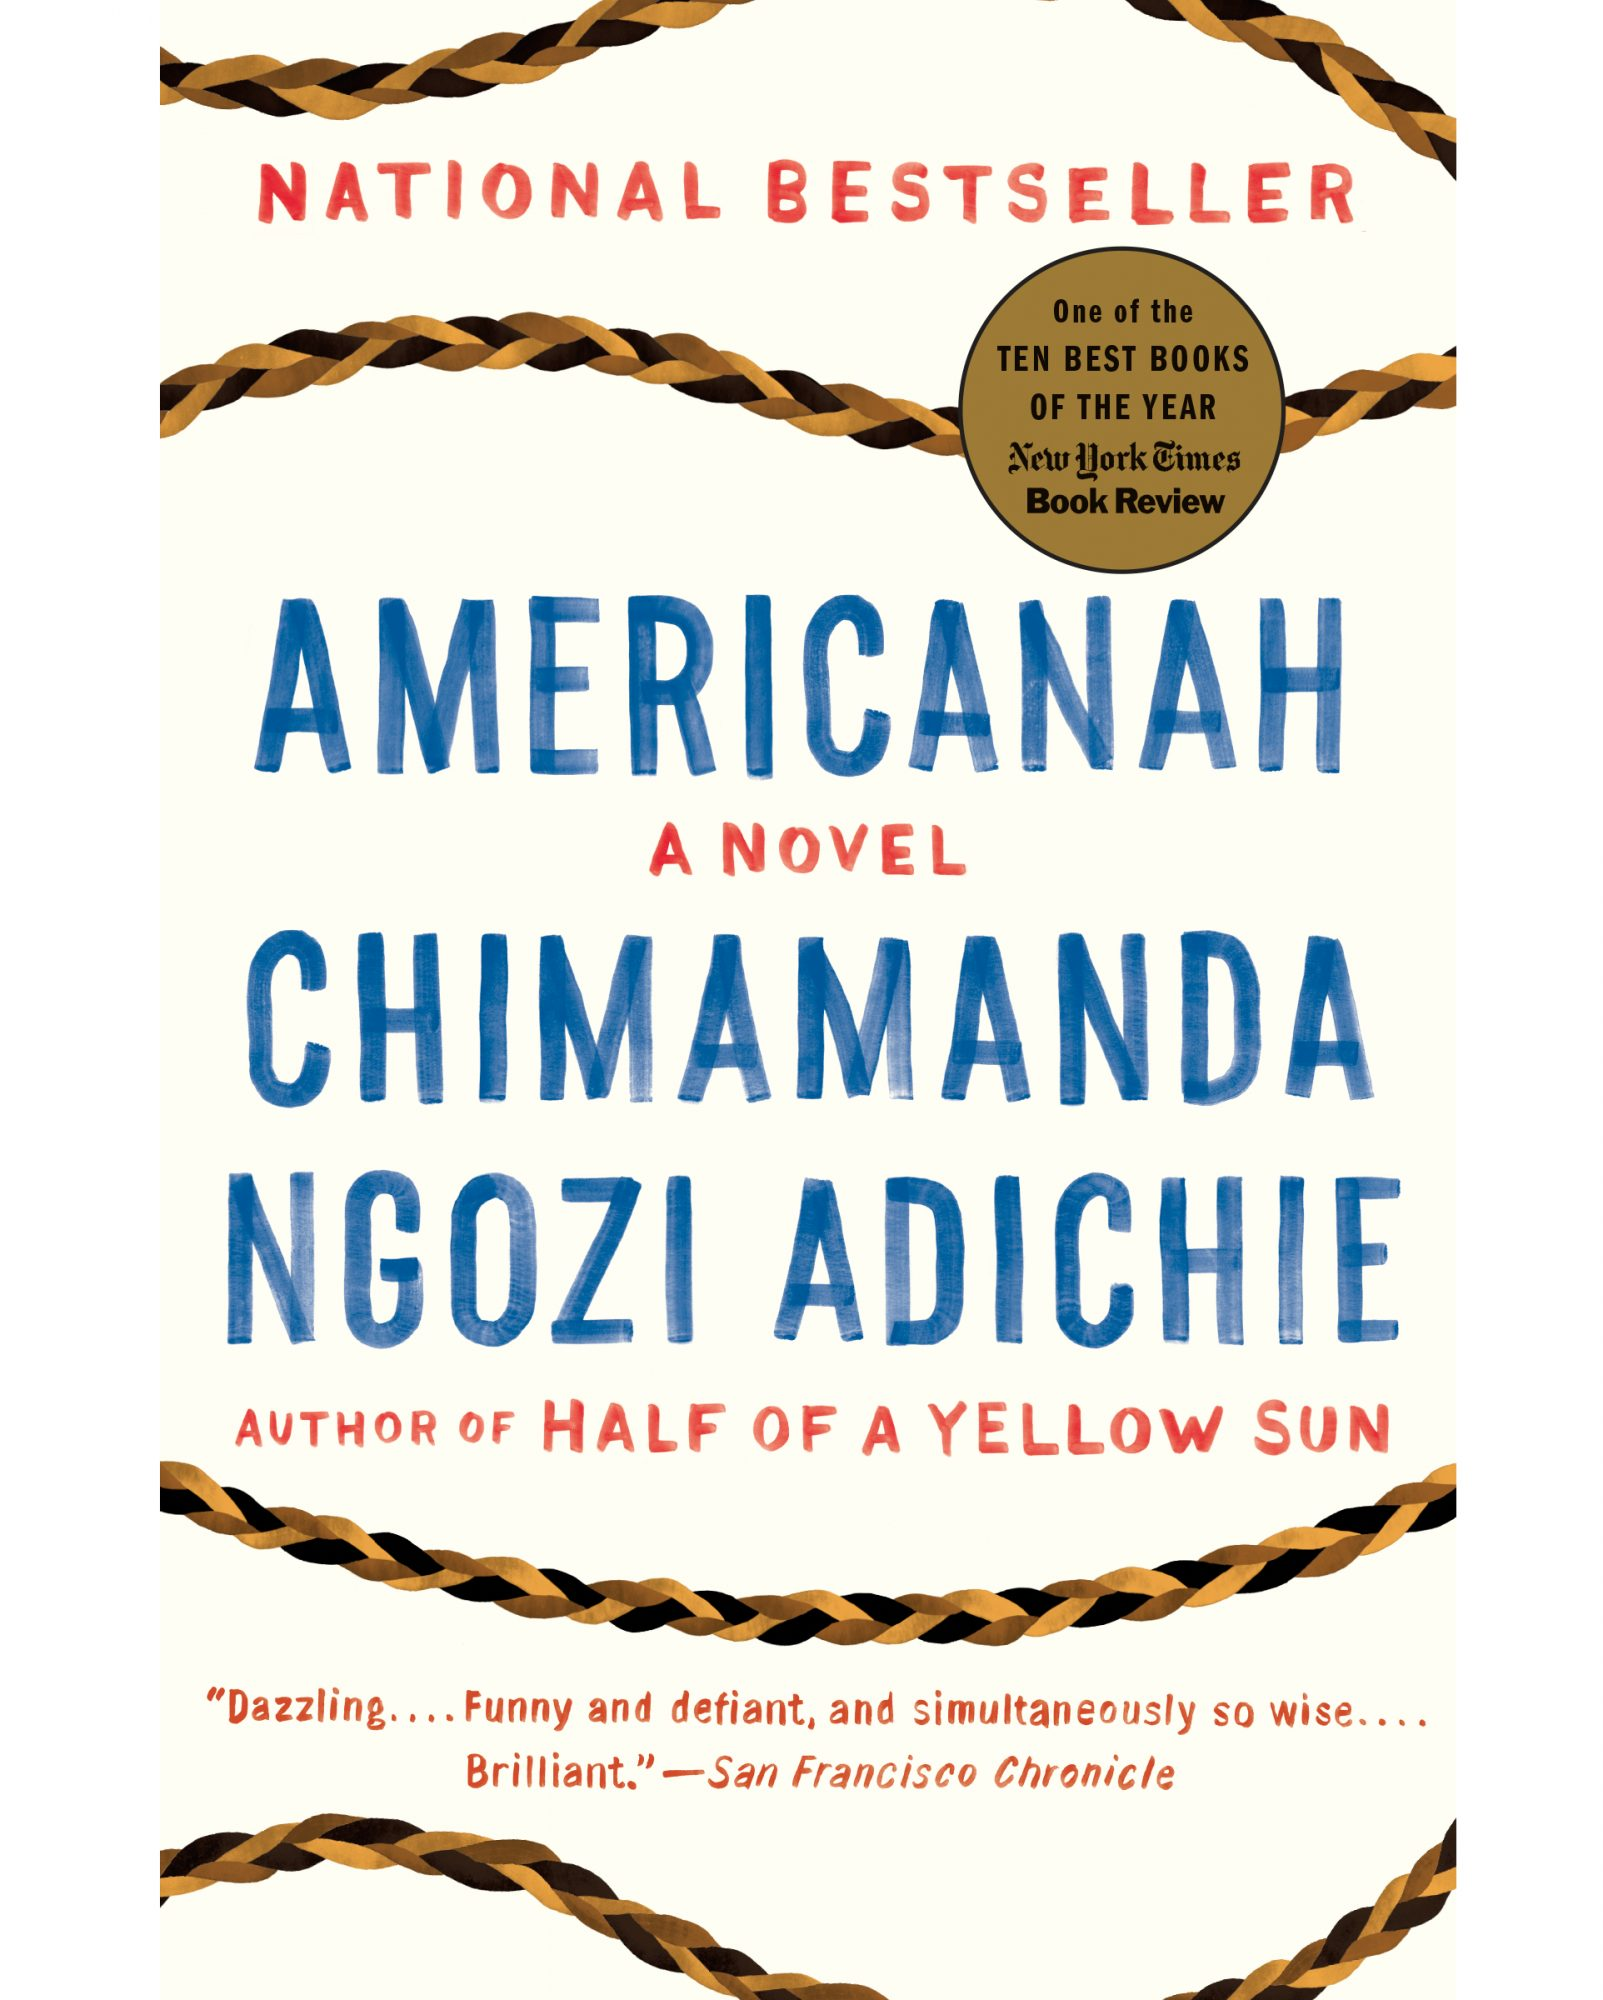 romantic-beach-reads-americanah-0715.jpg